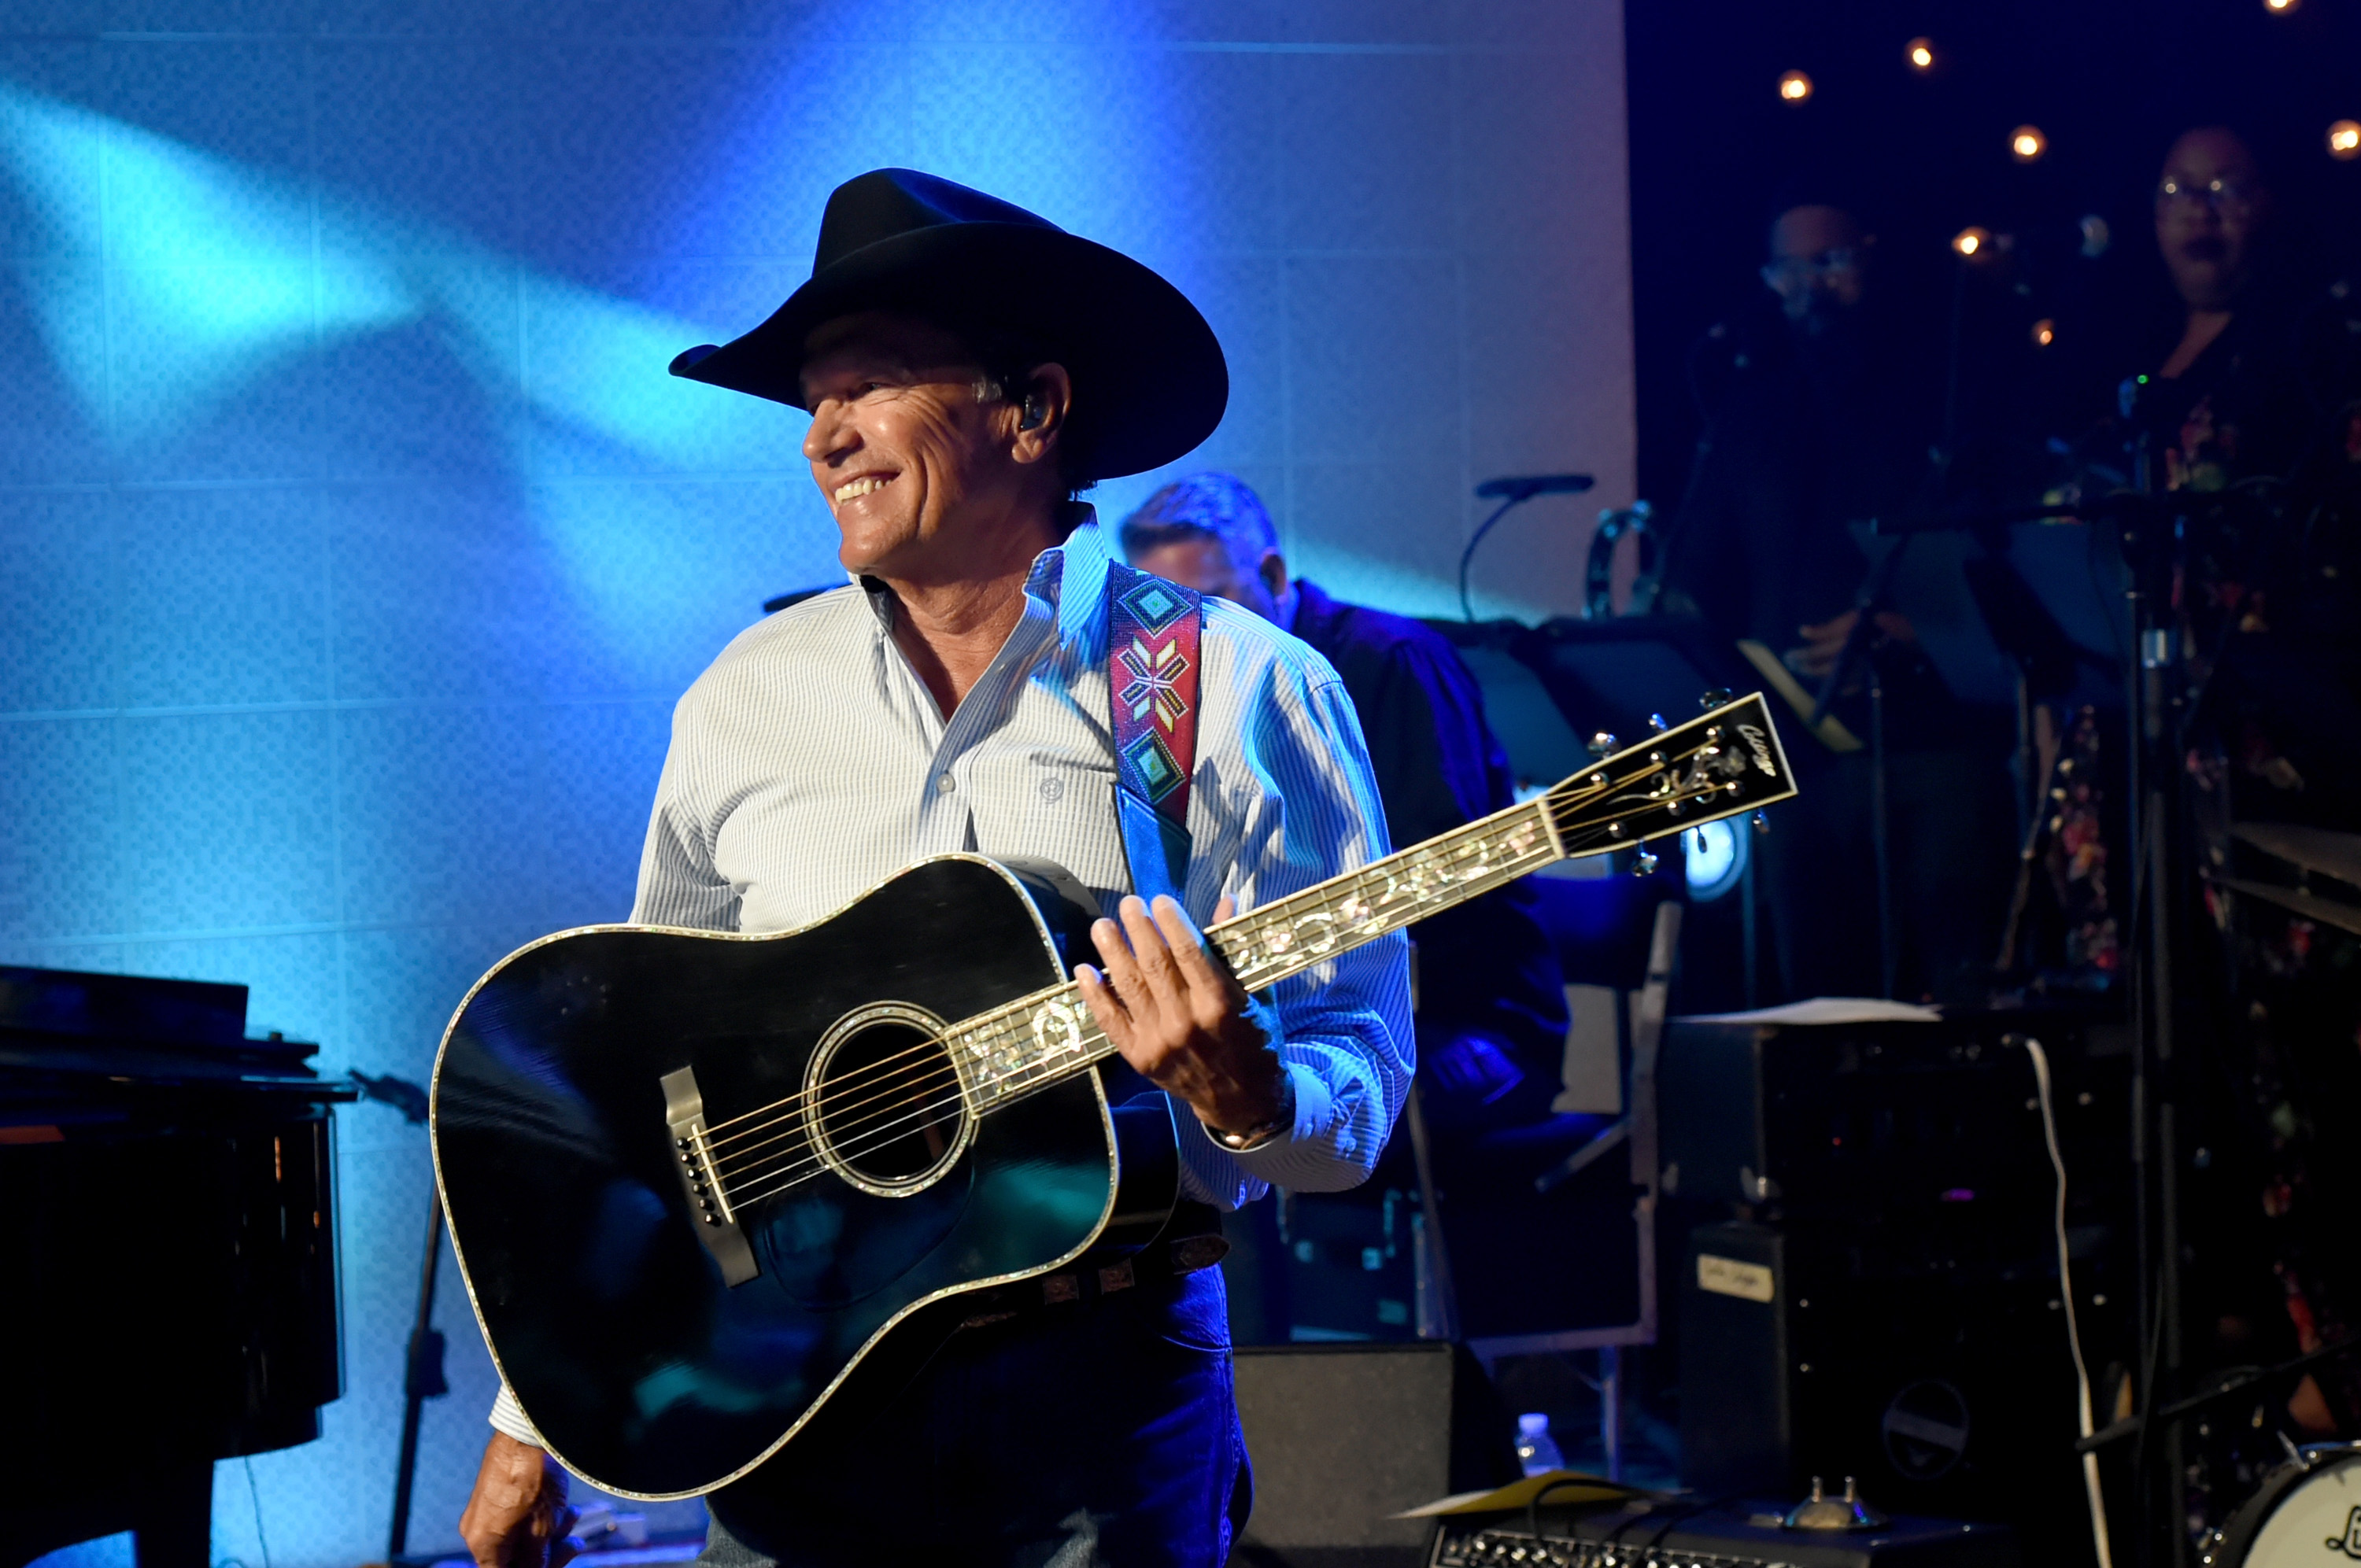 George Strait; Photo by Rick Diamond/Getty Images for Skyville